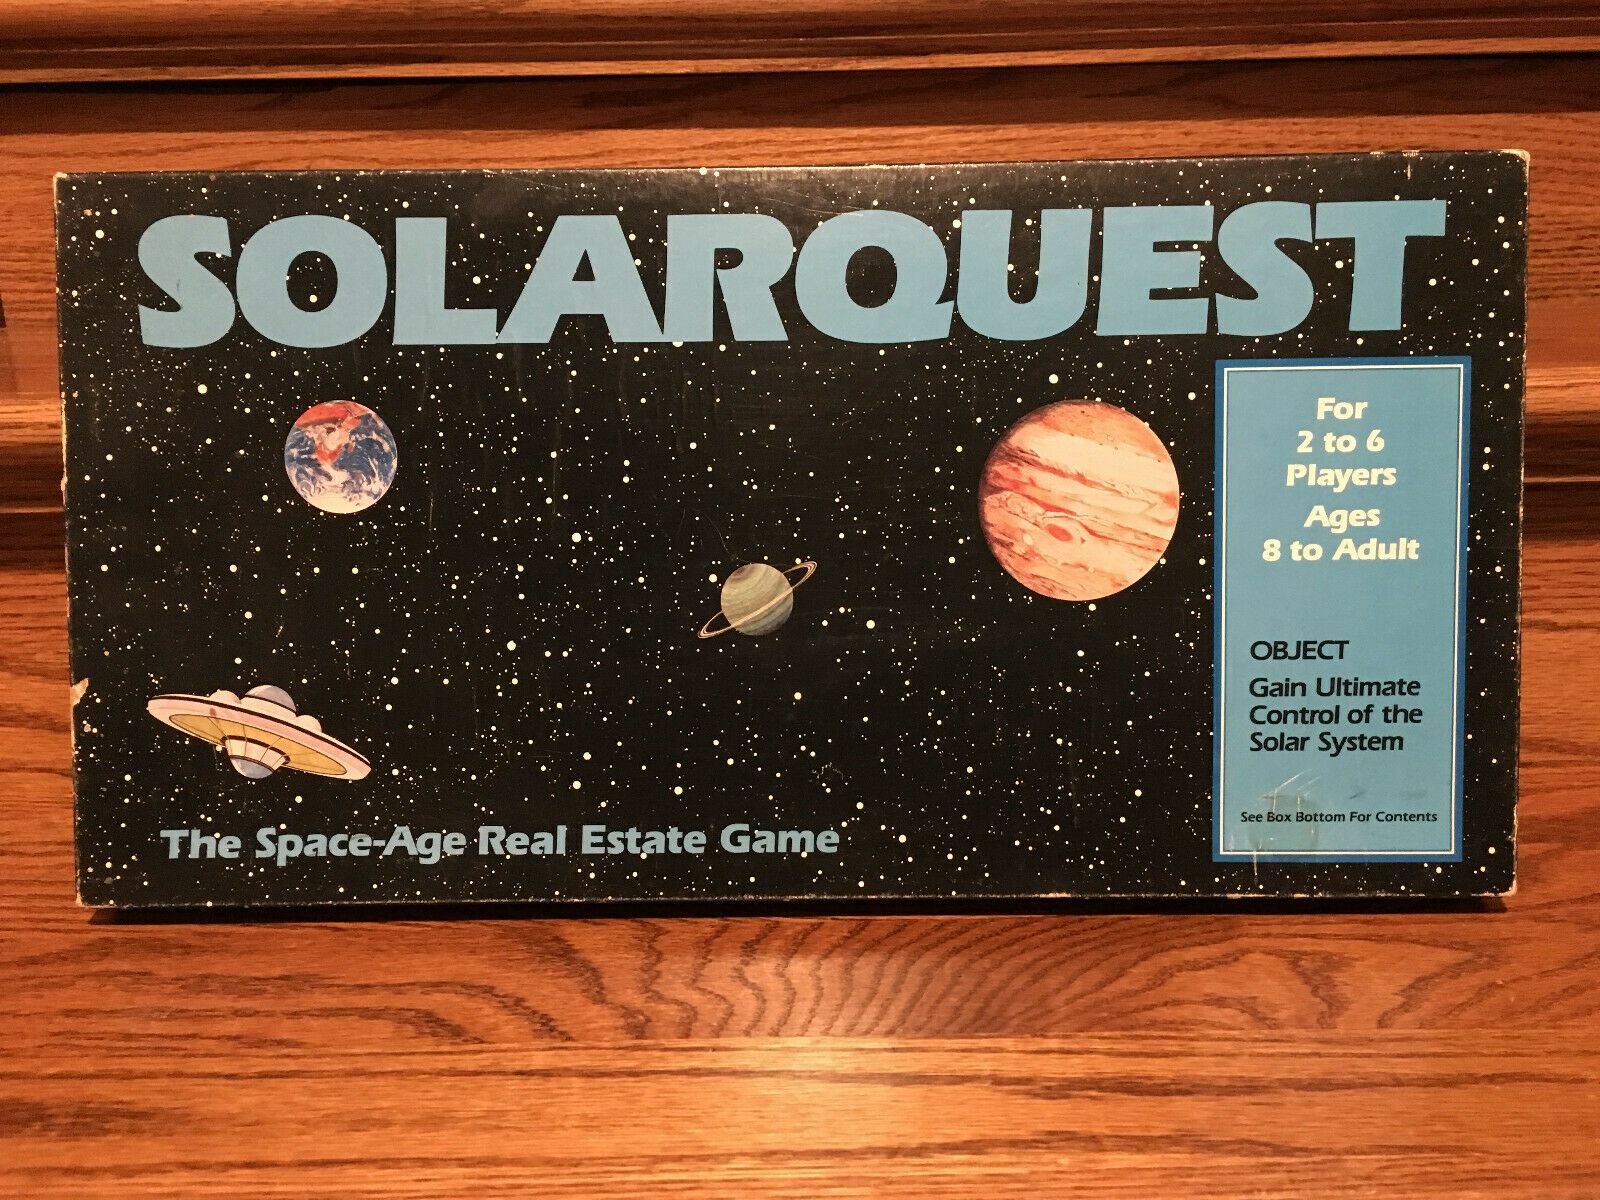 EXTREMELY RARE  1985 ProssoOTYPE (blu BOX) SOLARQUEST GAME 1st EDITION COMPLETE